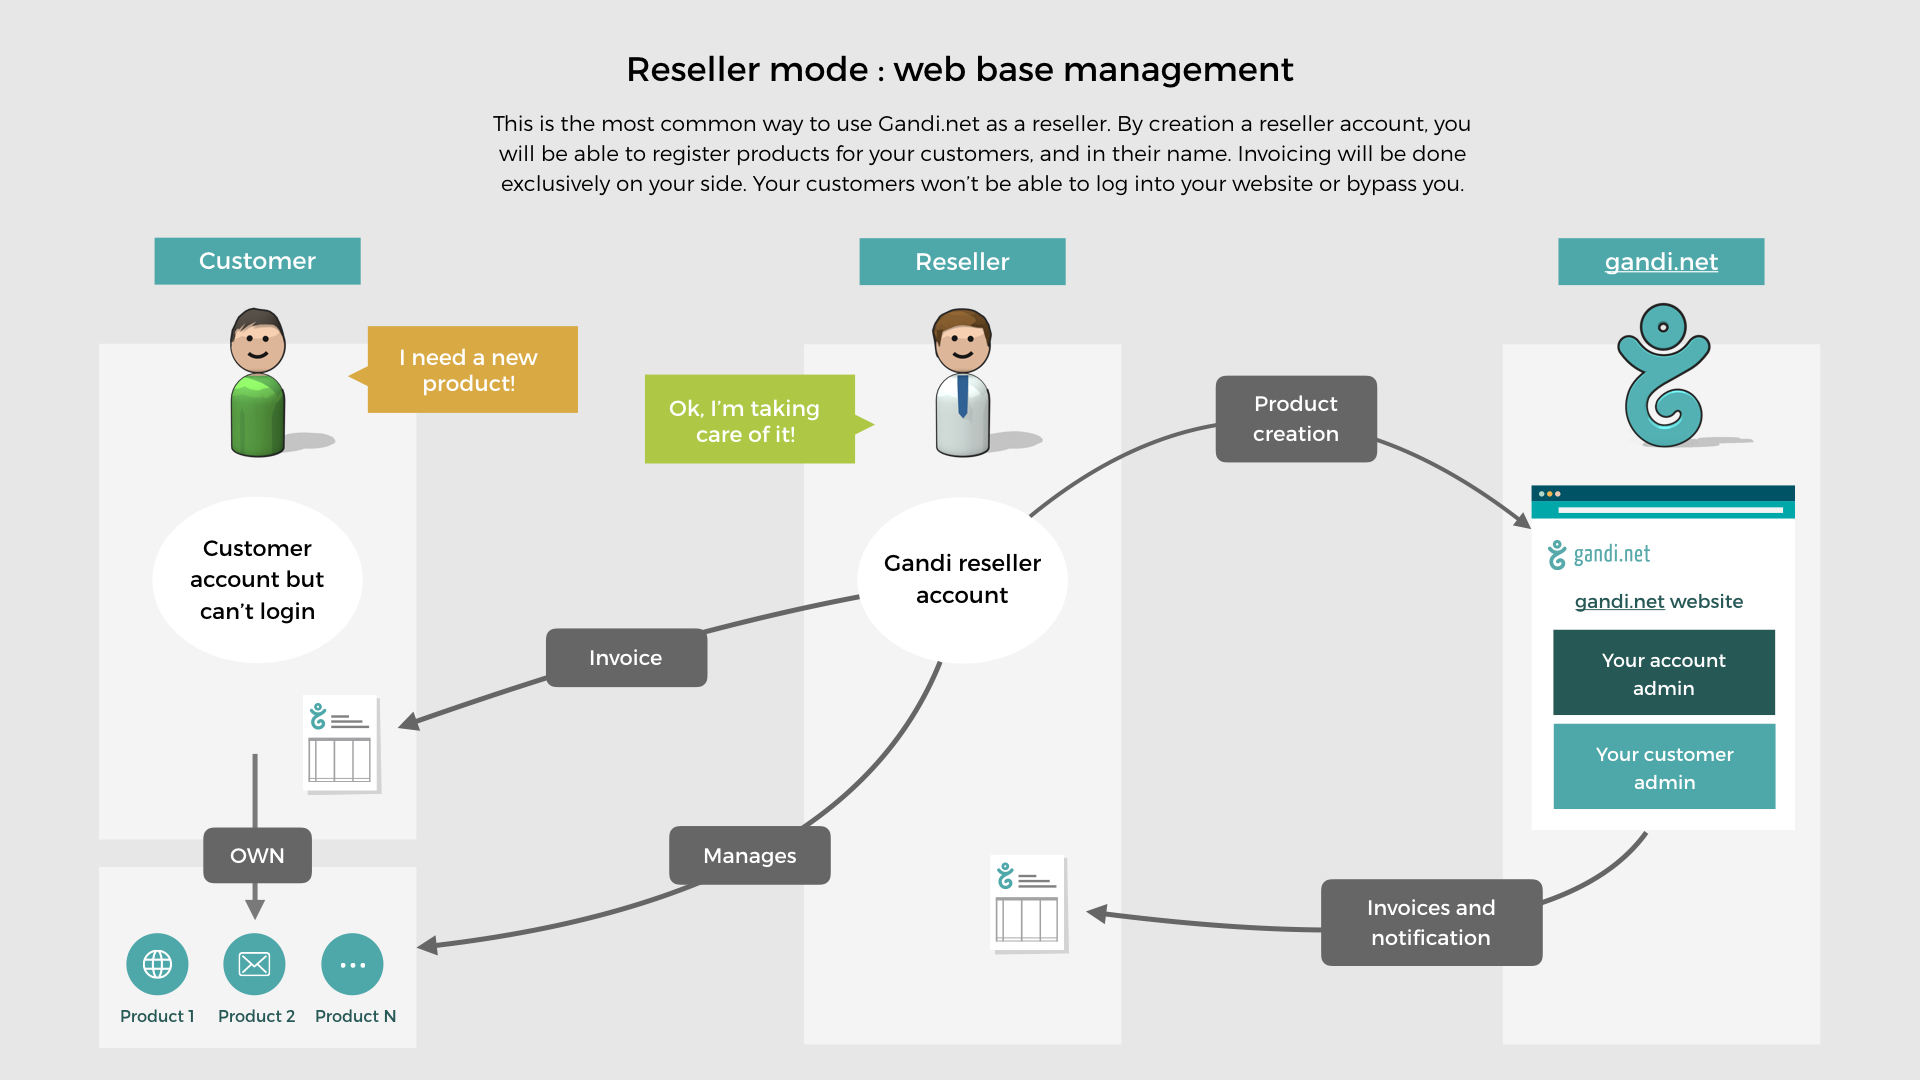 Chart displaying how the customer interacts with the reseller, and the reseller manages all of the interaction with Gandi.